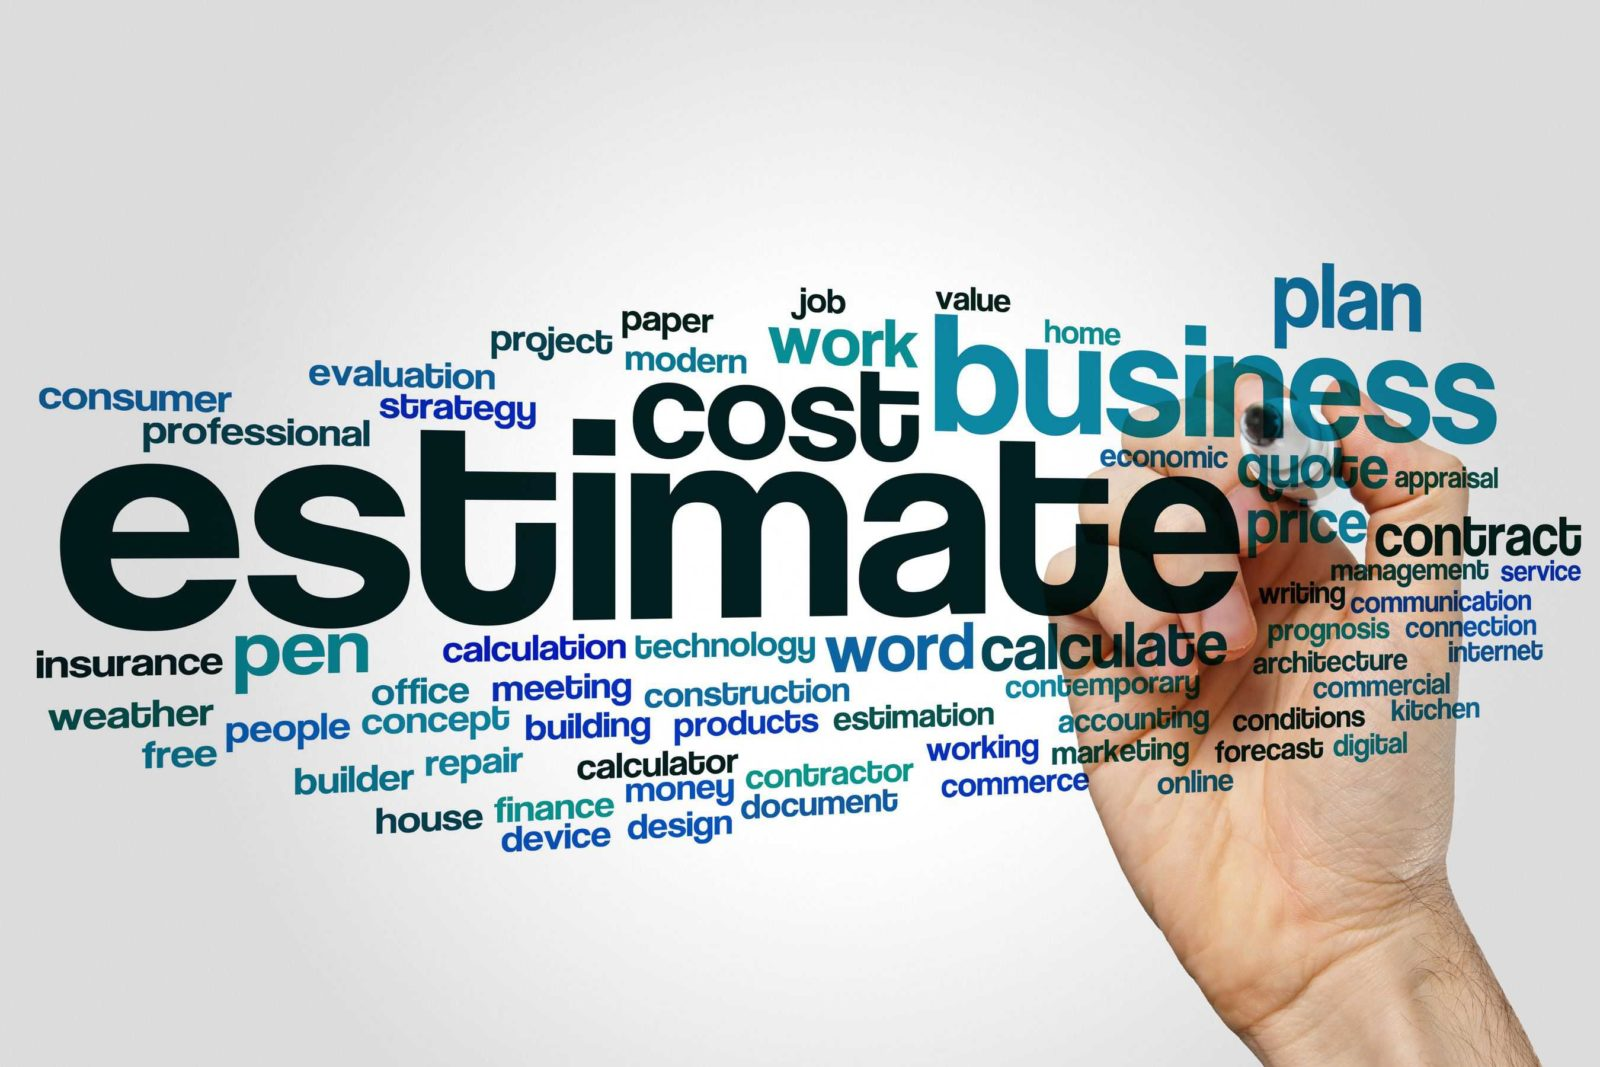 how much does it cost to build a nursing home estimate image